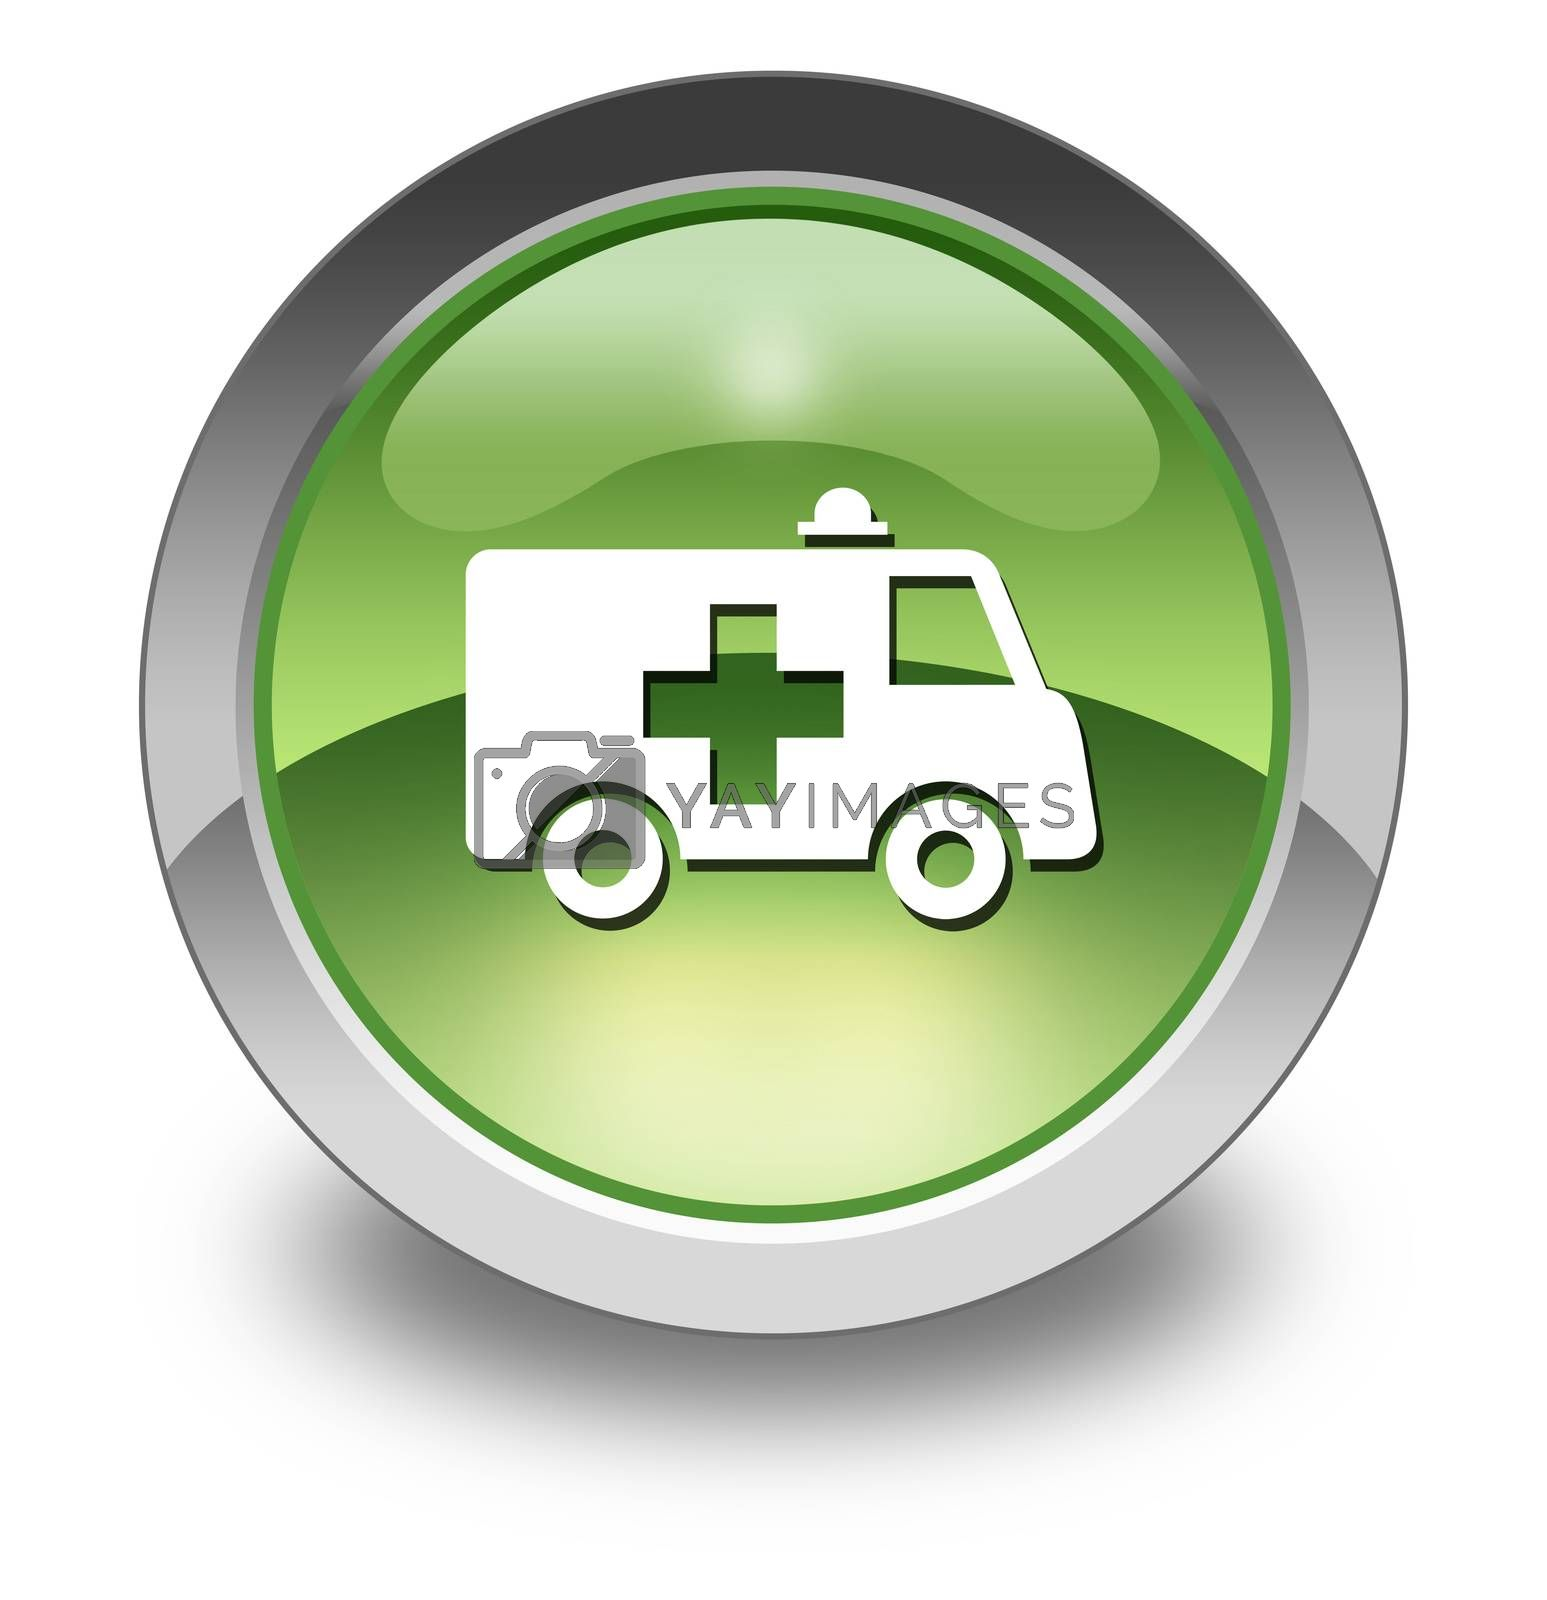 Icon, Button, Pictogram with Ambulance symbol